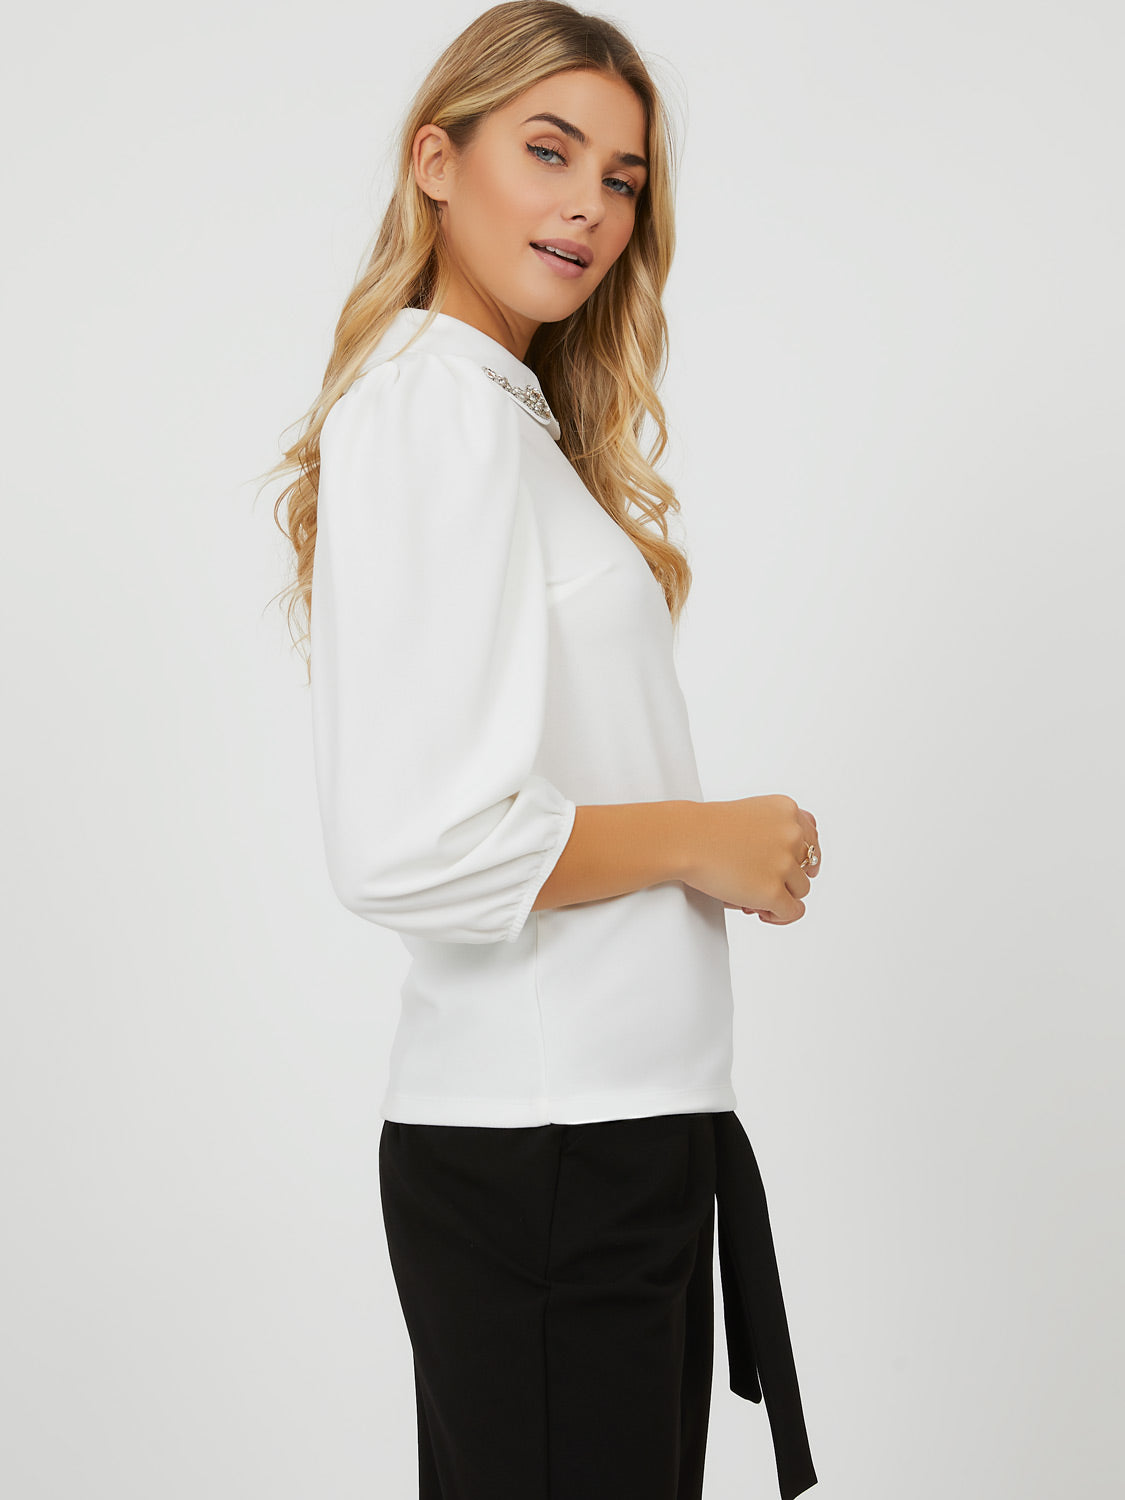 Removable Shirt Collar Puffy Sleeve Top